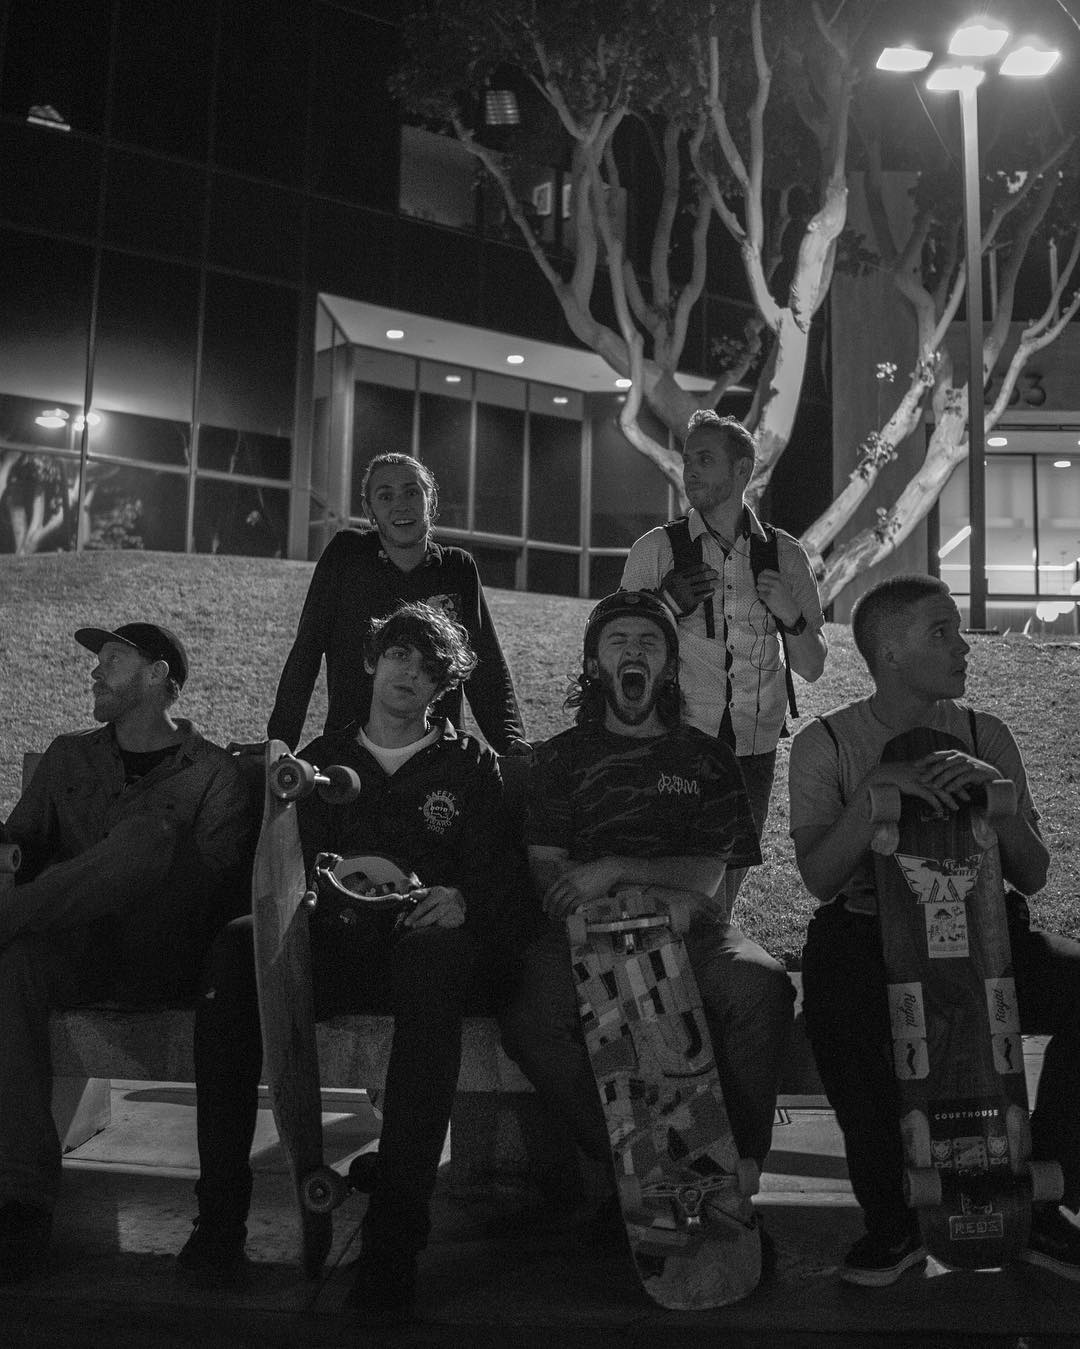 #TheGelLab has been taking place for the last 8 years during LA's late nights thanks to @ari_shark  Here's a classic moment of this wonderful congregation where individuals find is hard to sit still without yawning.